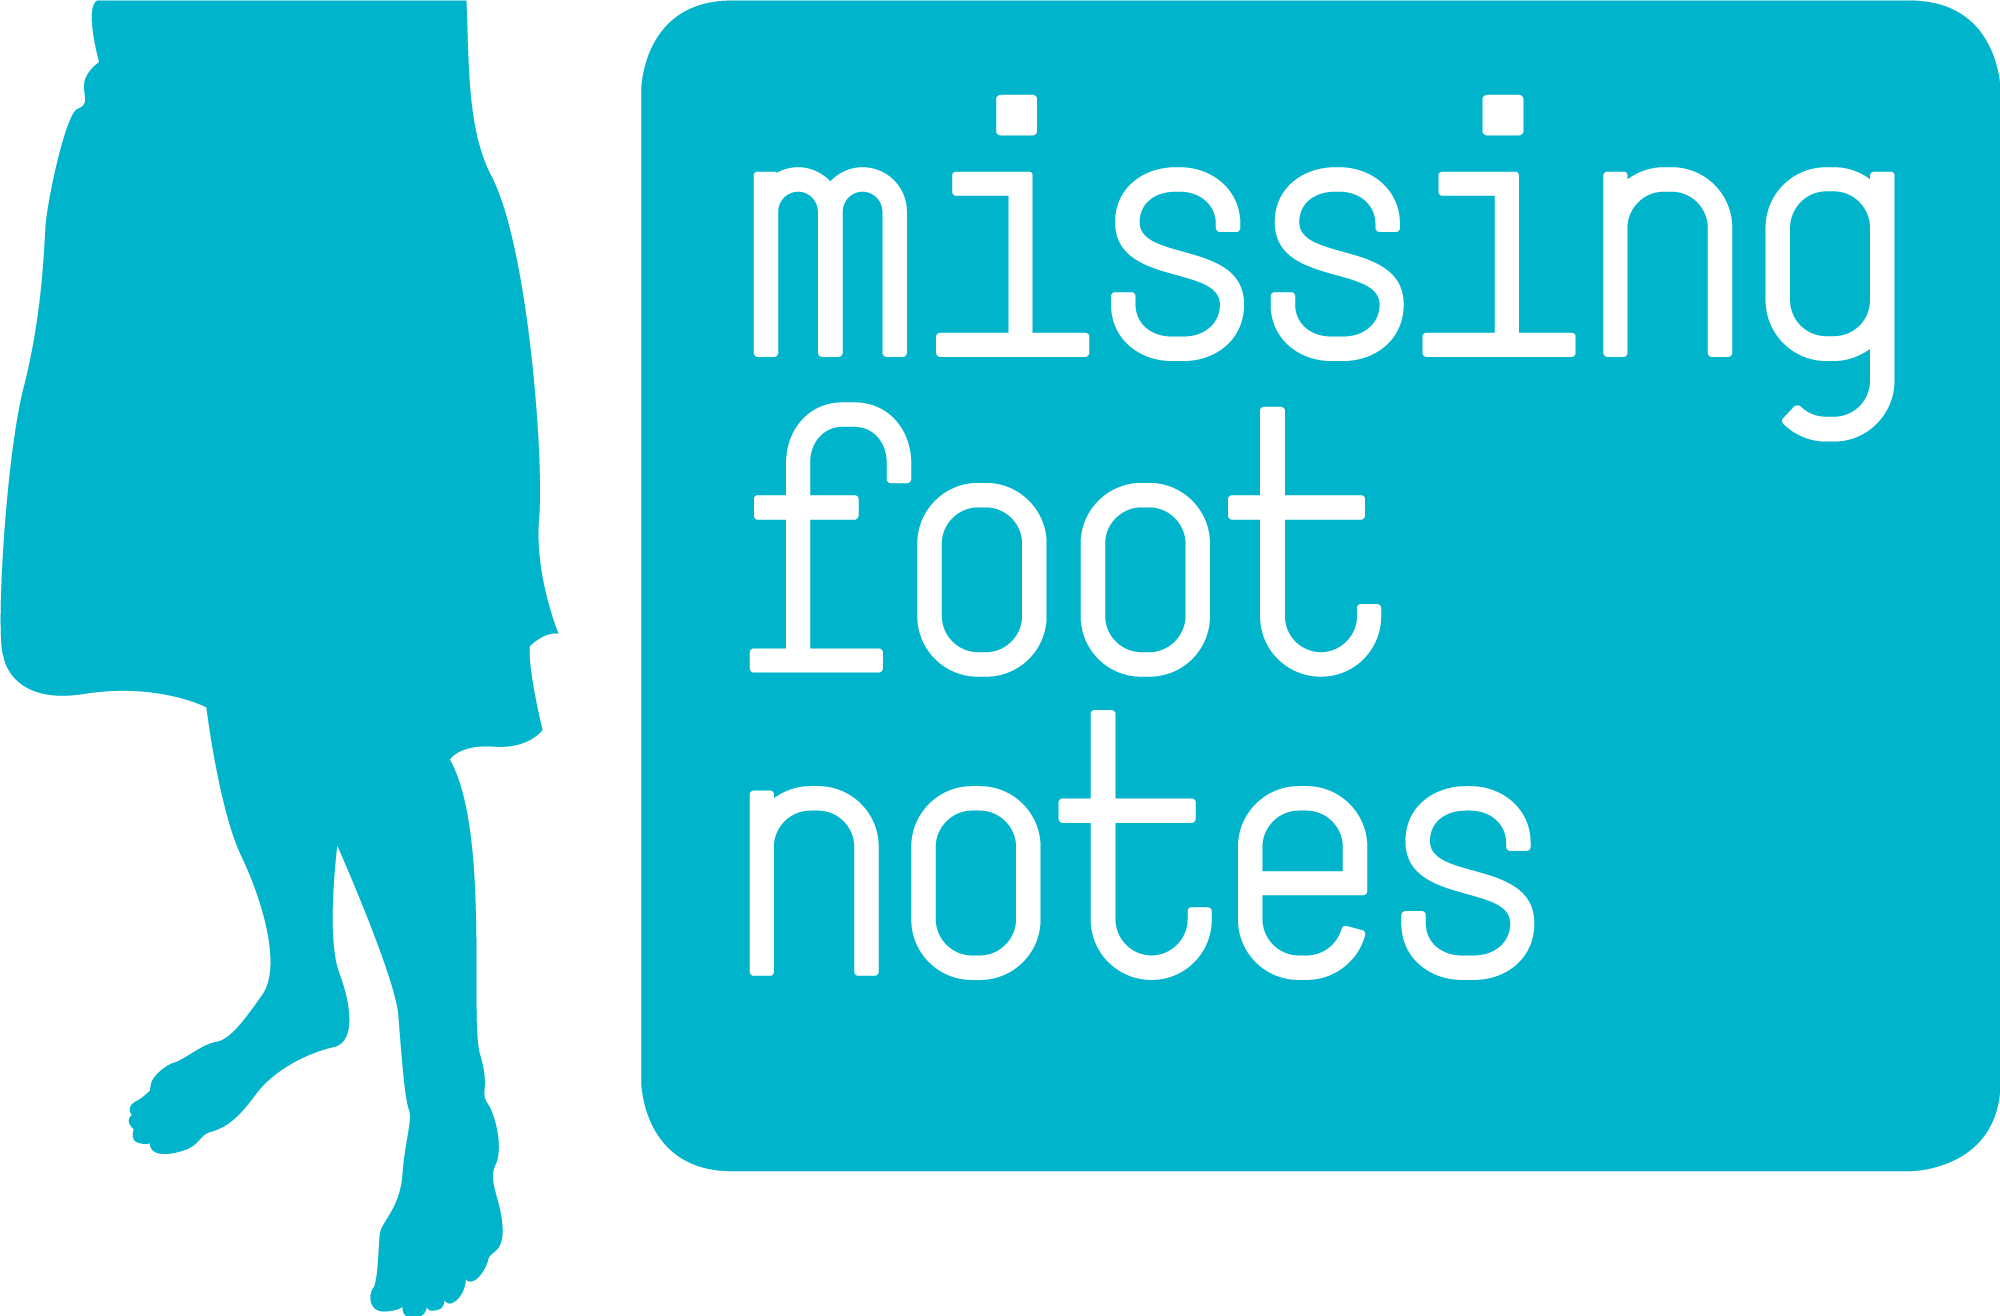 missing-footnotes